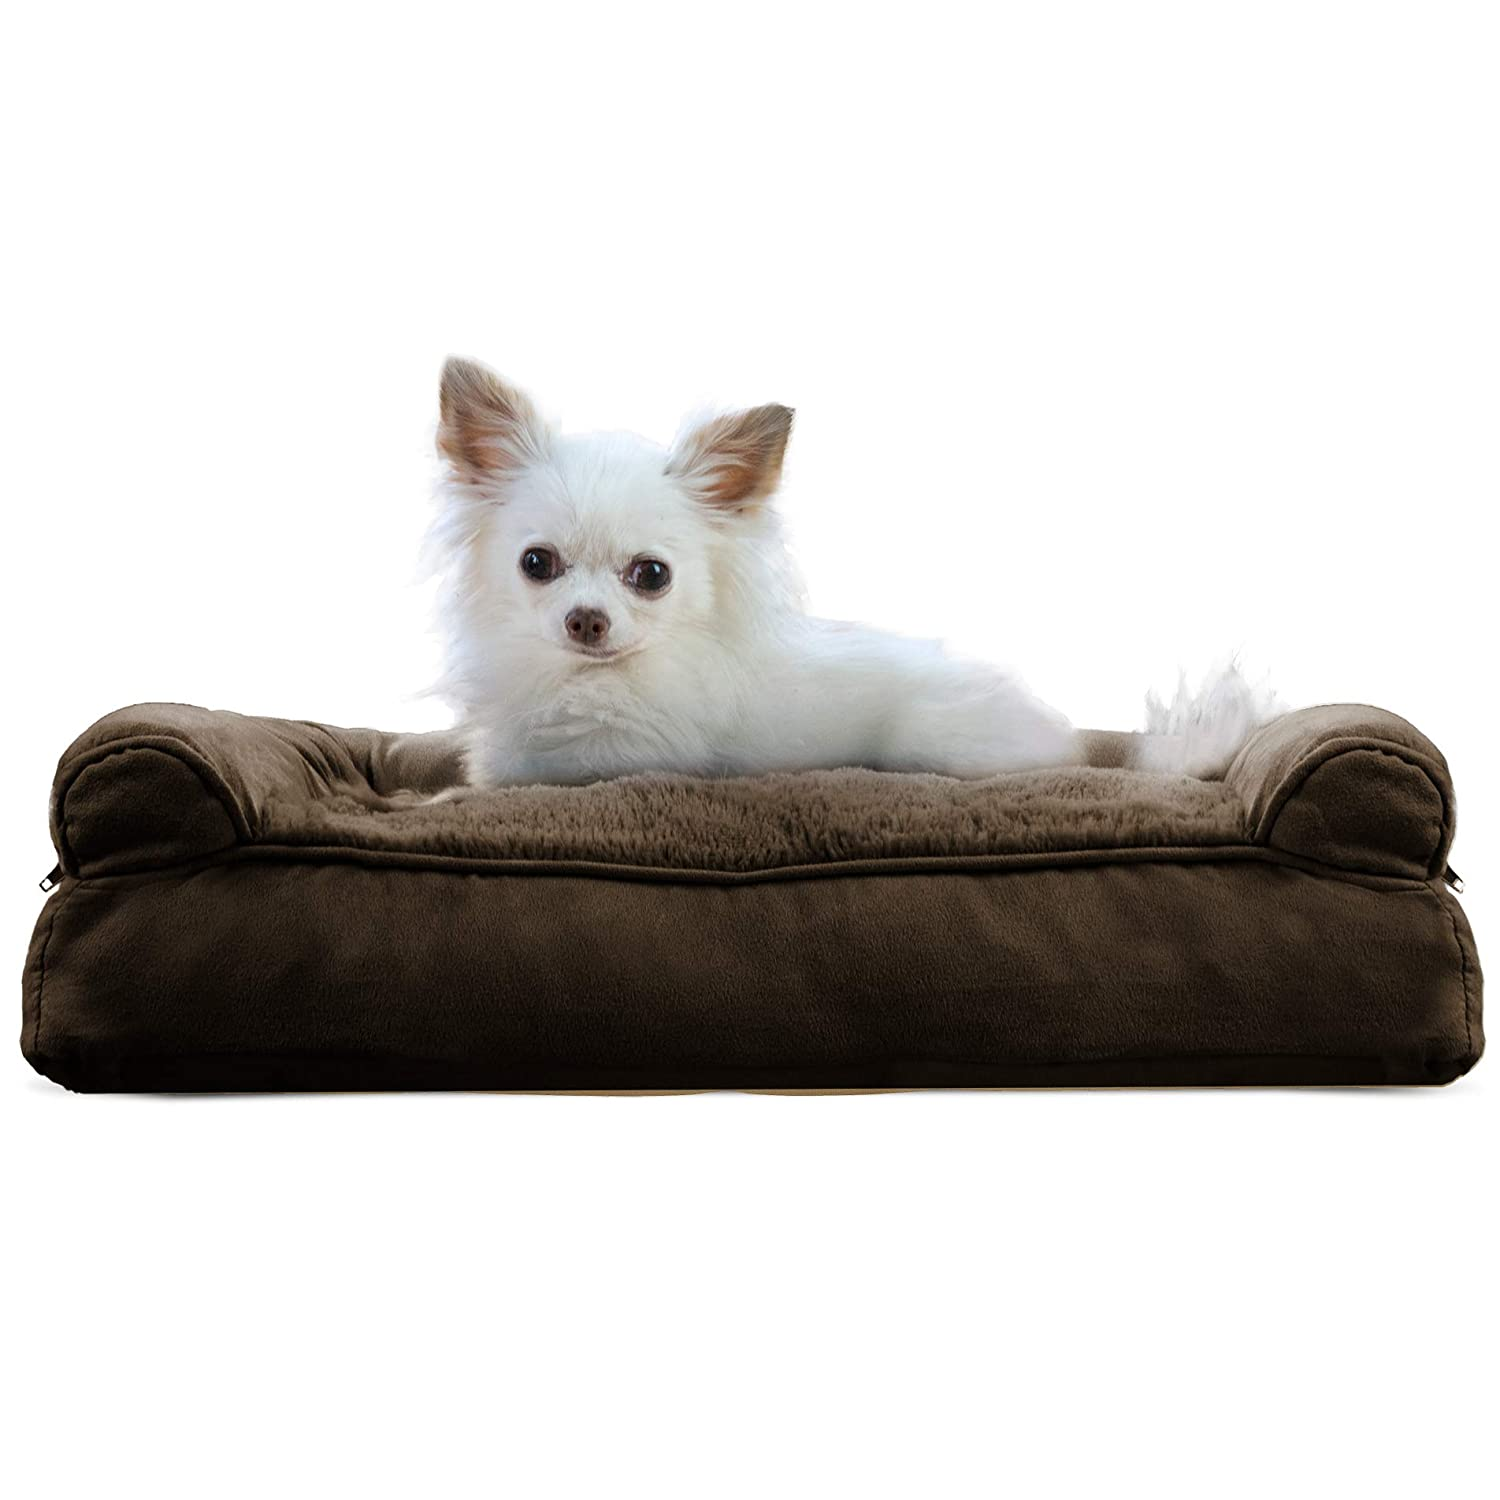 Espresso Small Espresso Small FurHaven Pet Dog Bed   Plush & Suede Pillow Sofa-Style Couch Pet Bed for Dogs & Cats, Espresso, Small